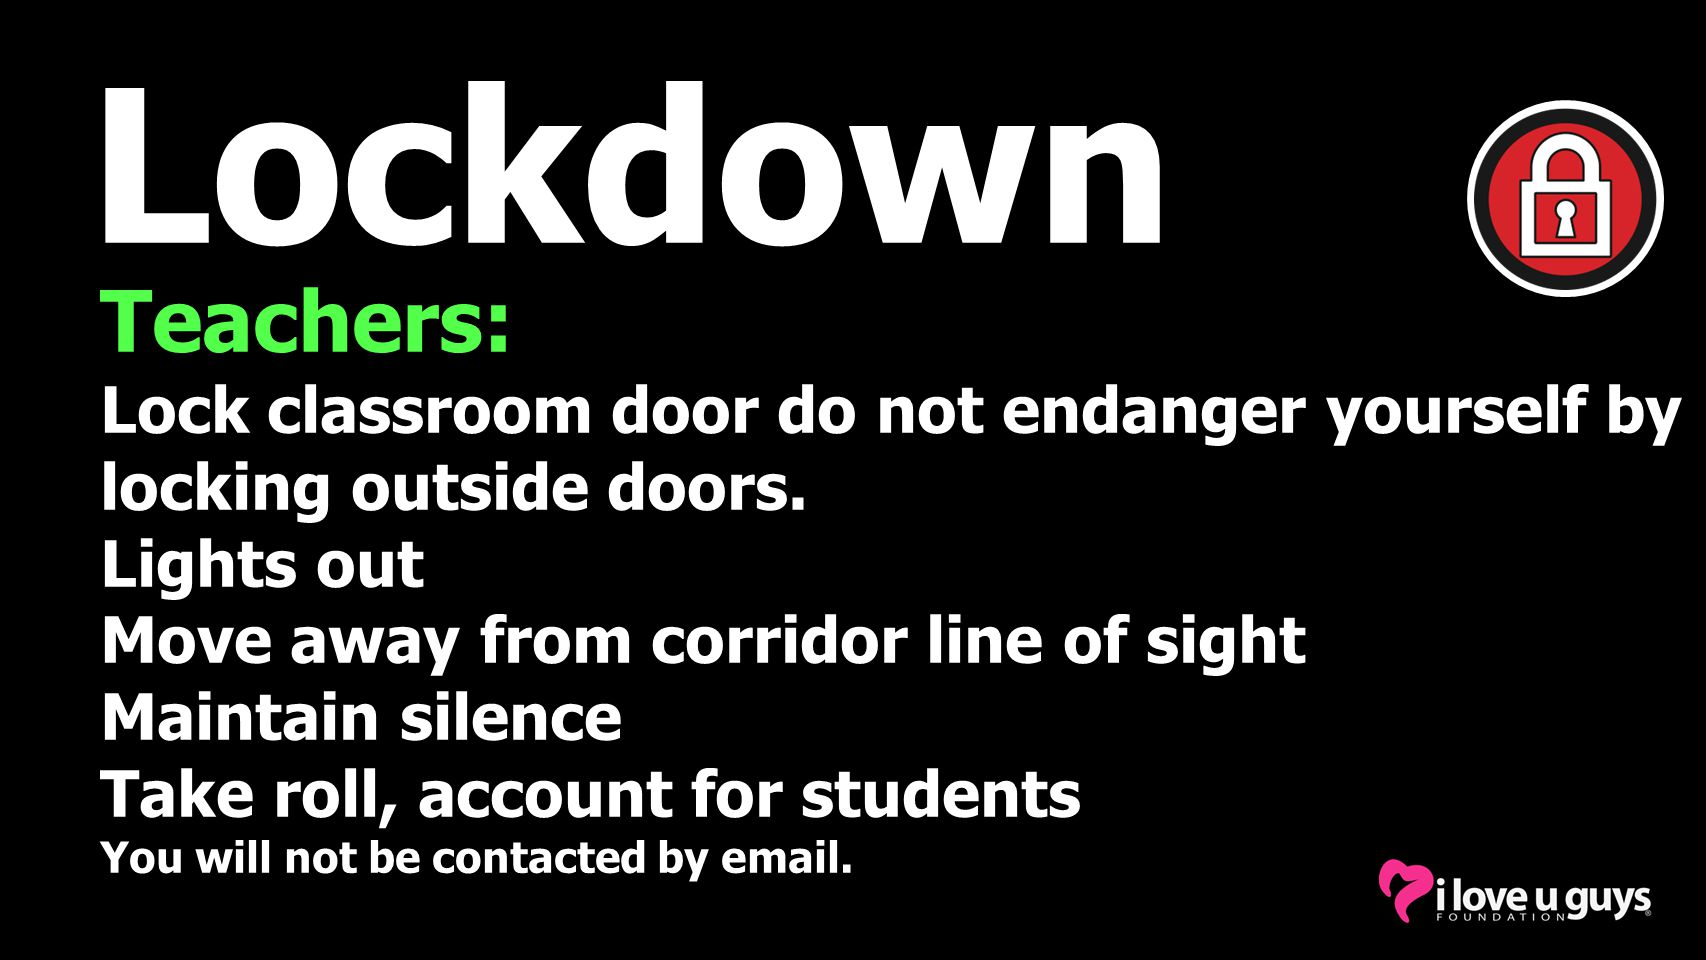 Lockdown Teachers: Lock classroom door do not endanger yourself by locking outside doors. Lights out.